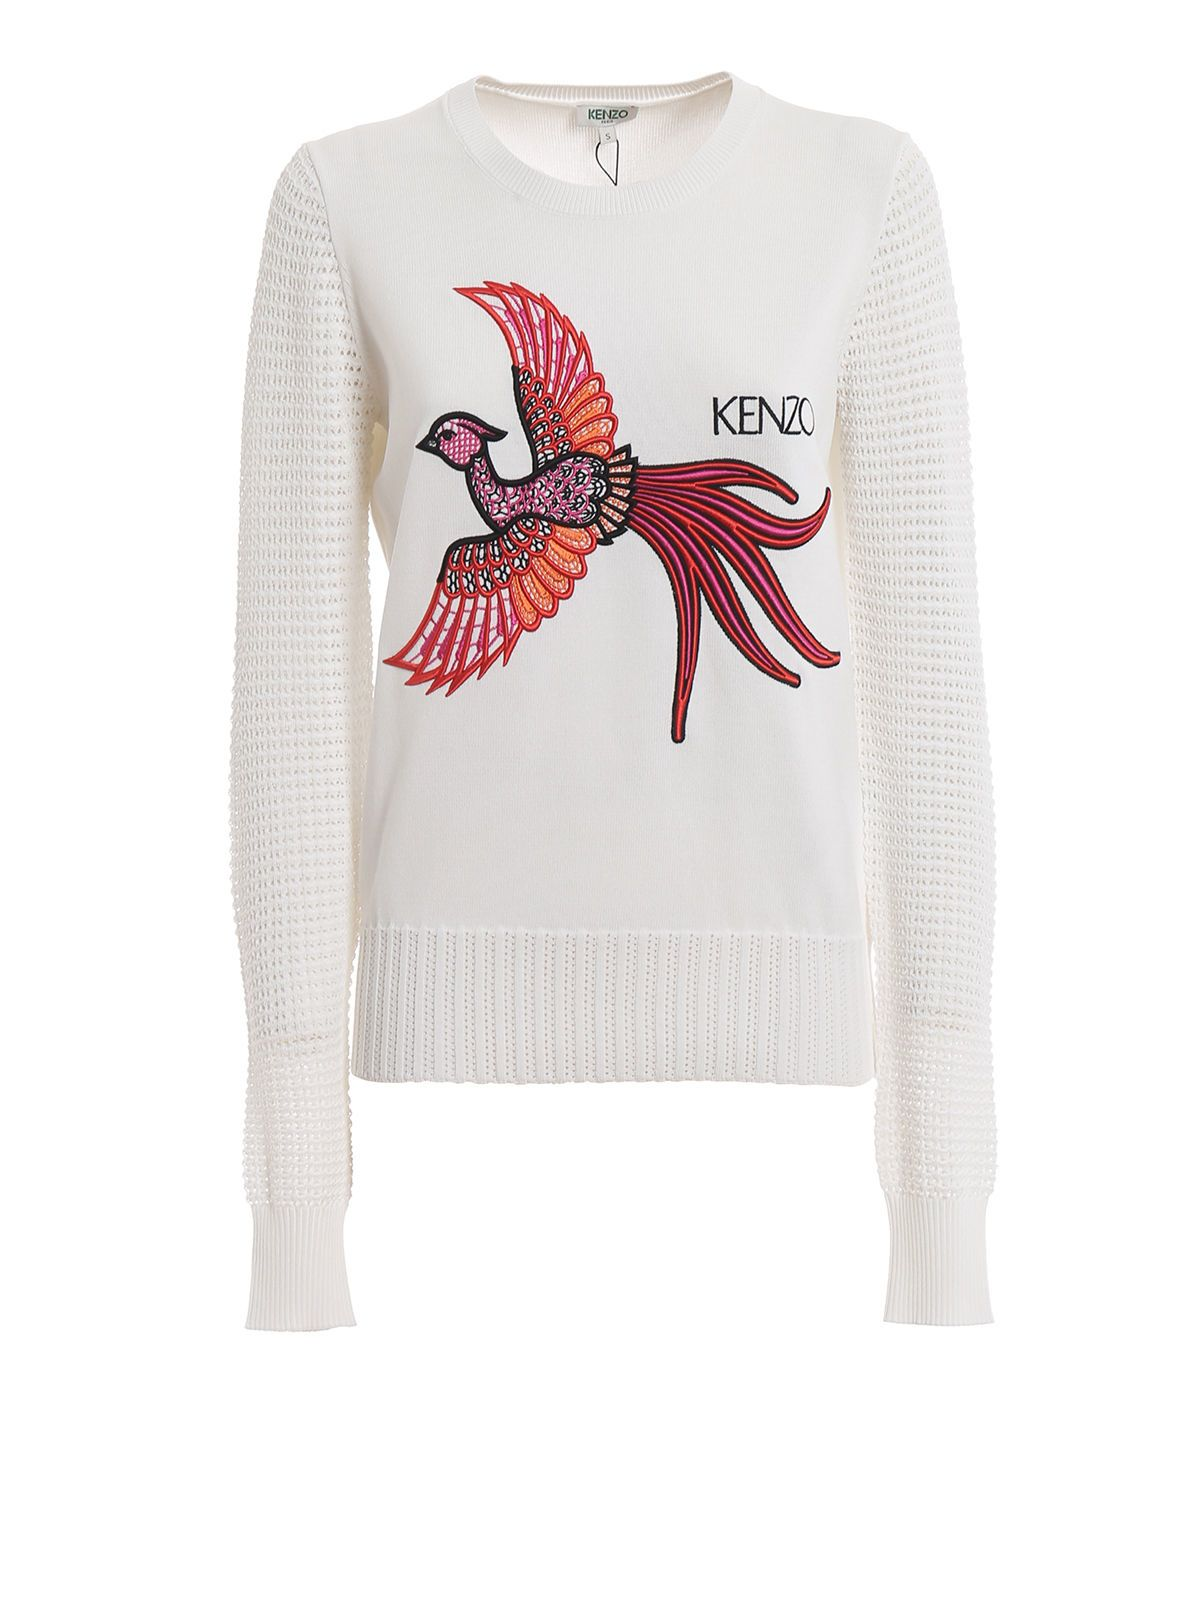 ecd93ff1 Shop Kenzo Jumpers on sale at the Marie Claire Edit